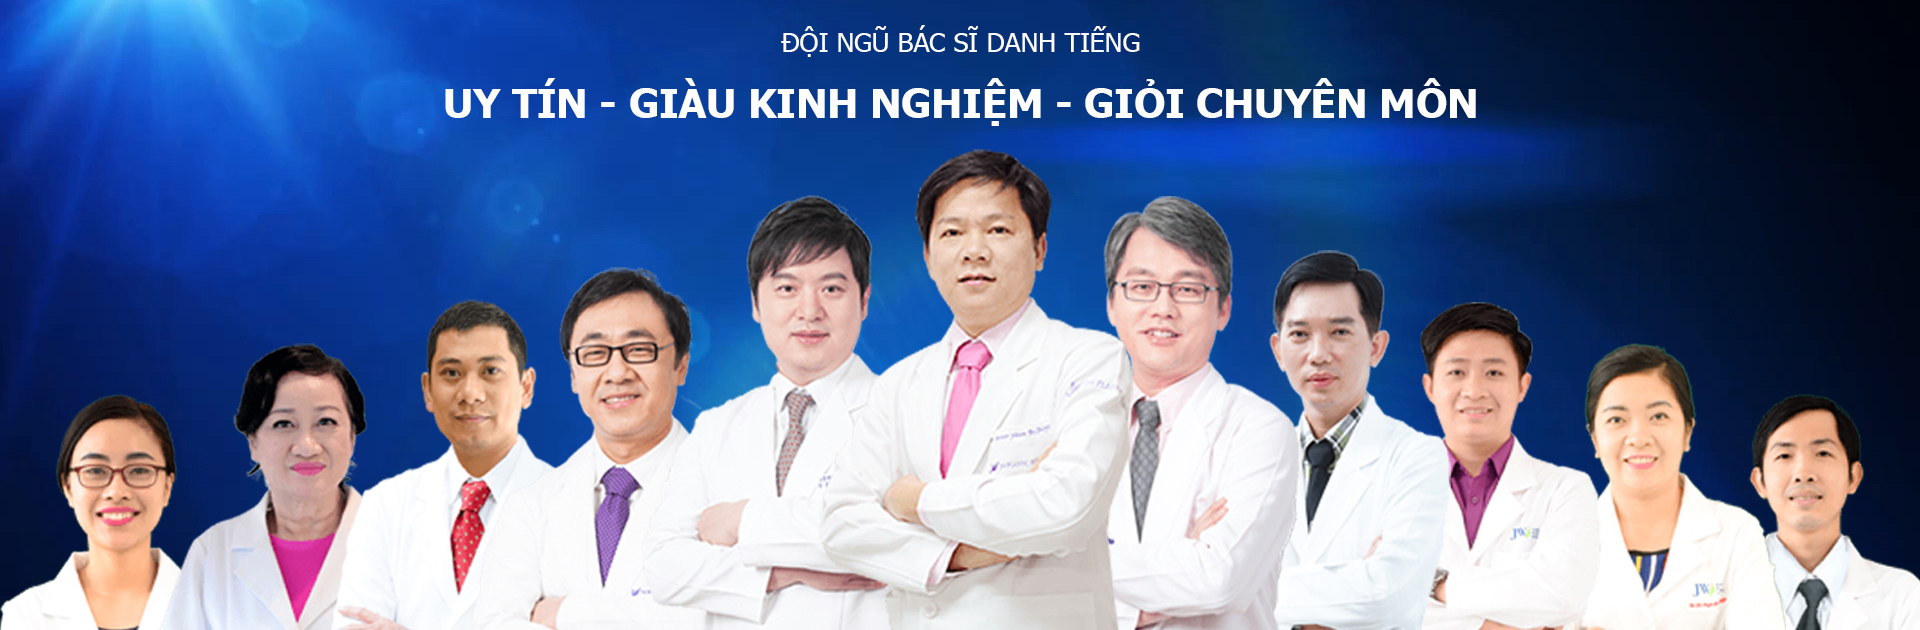 DOI-NGU-BAC-SI-UY-TIN-VIET-HAN